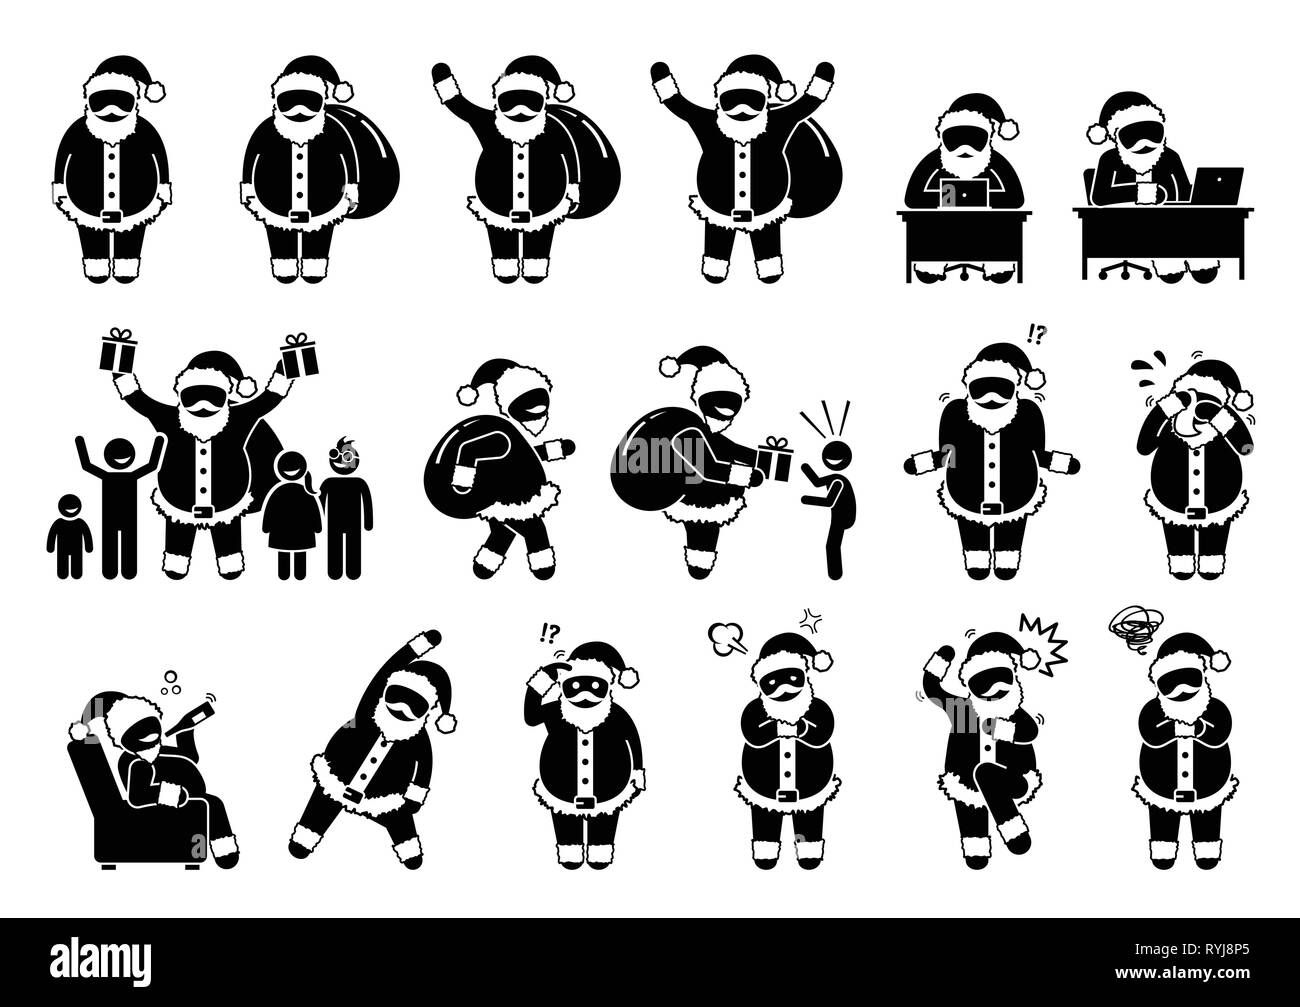 Santa Claus basic postures and feelings pictograms. Stick figure depict various poses and emotions of Santa Claus during Christmas. Icons also include - Stock Image